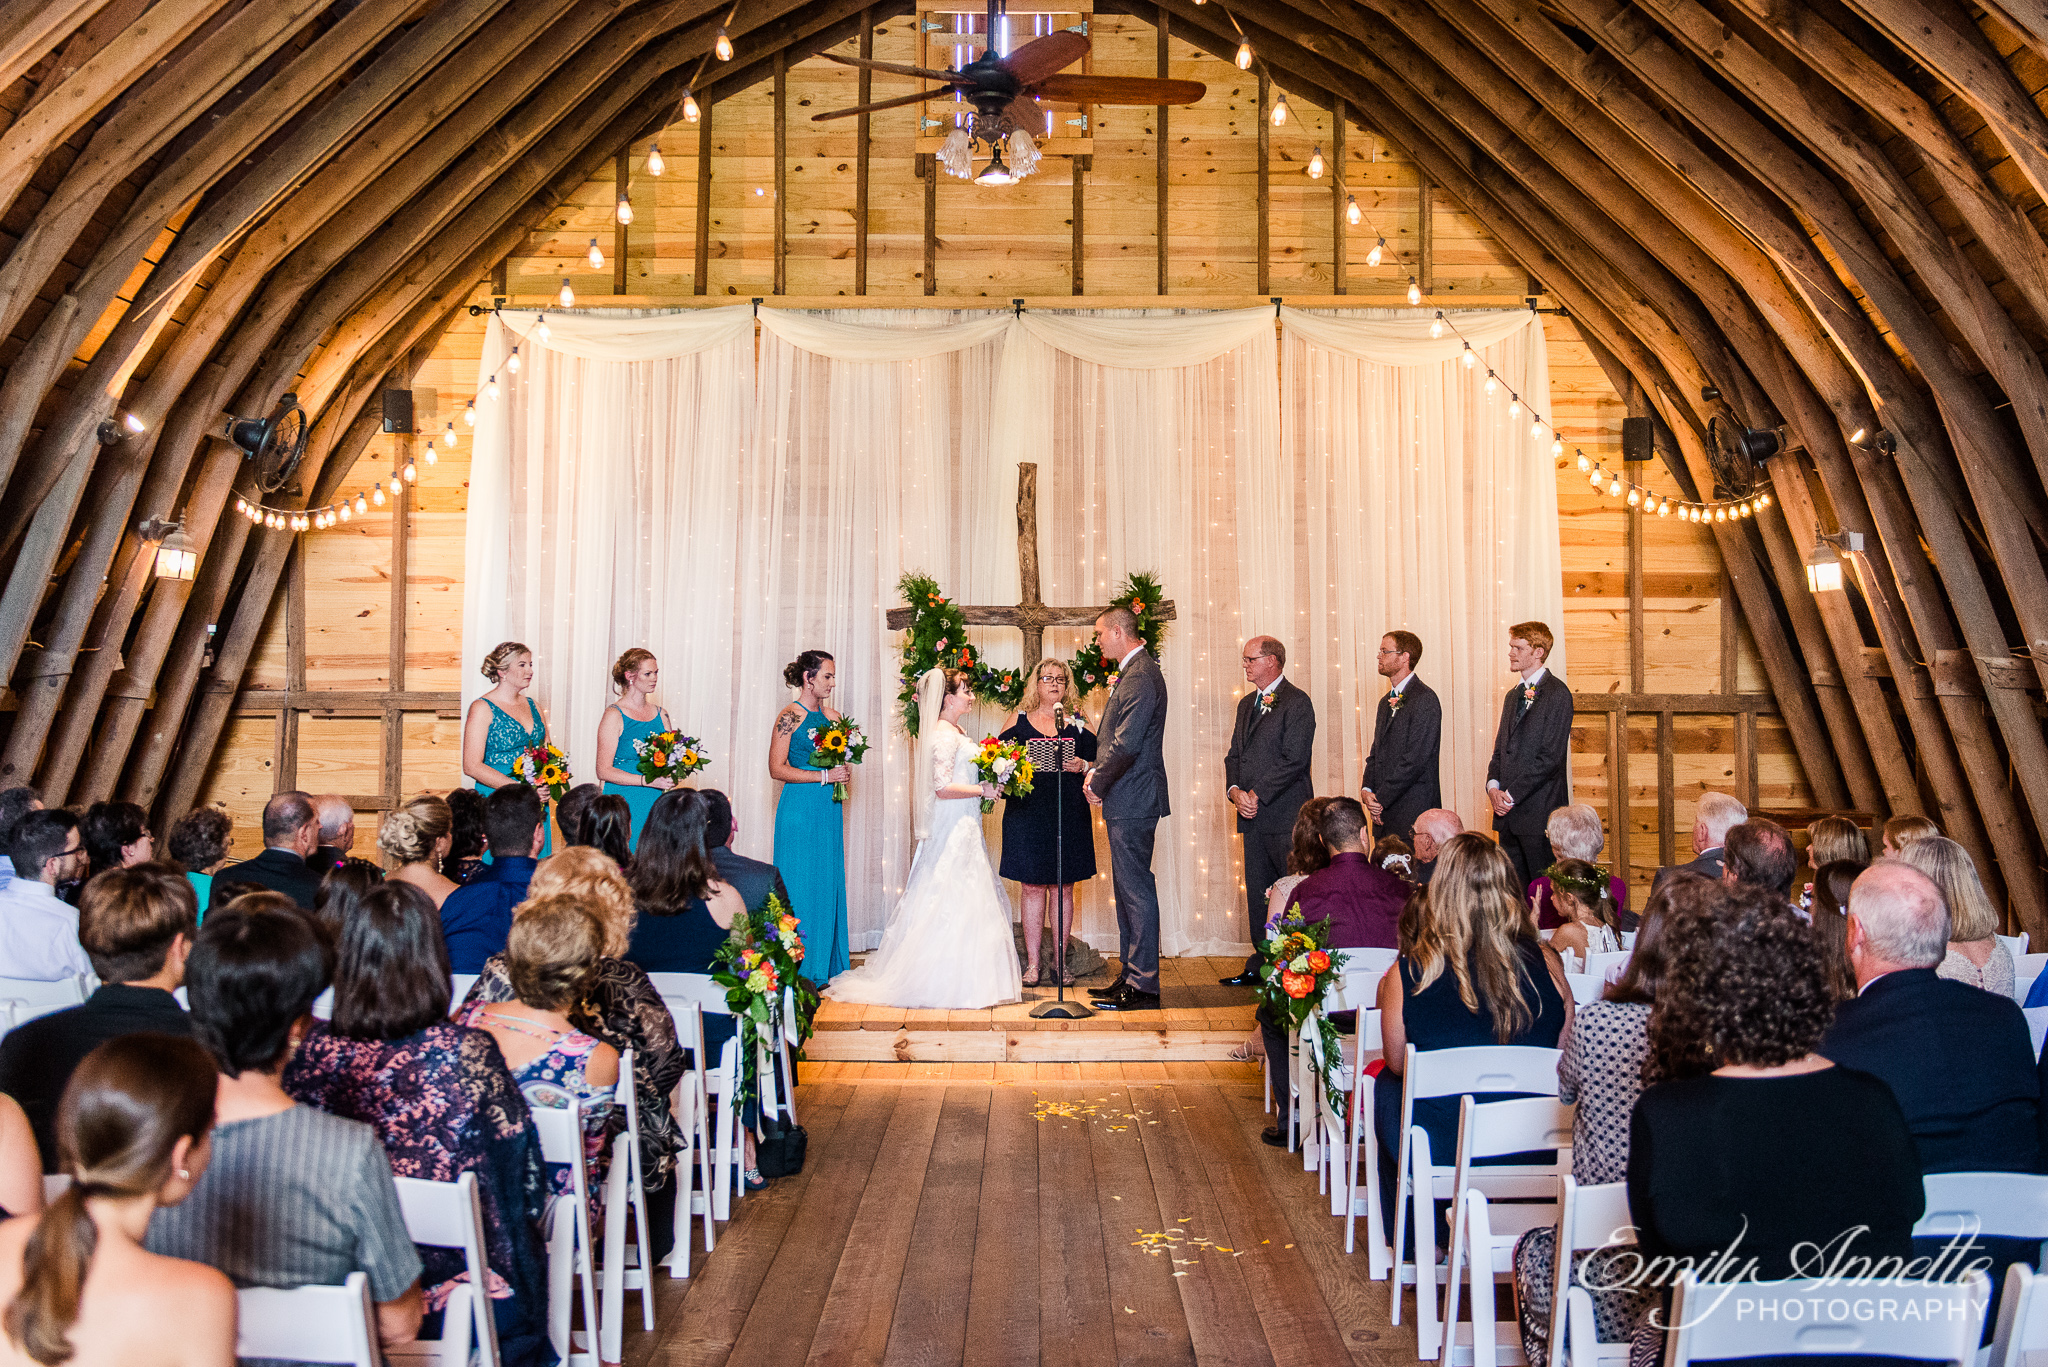 A bride and groom stand with the wedding party and an officiant inside a decorated barn for a wedding ceremony during a country wedding at Amber Grove near Richmond, Virginia